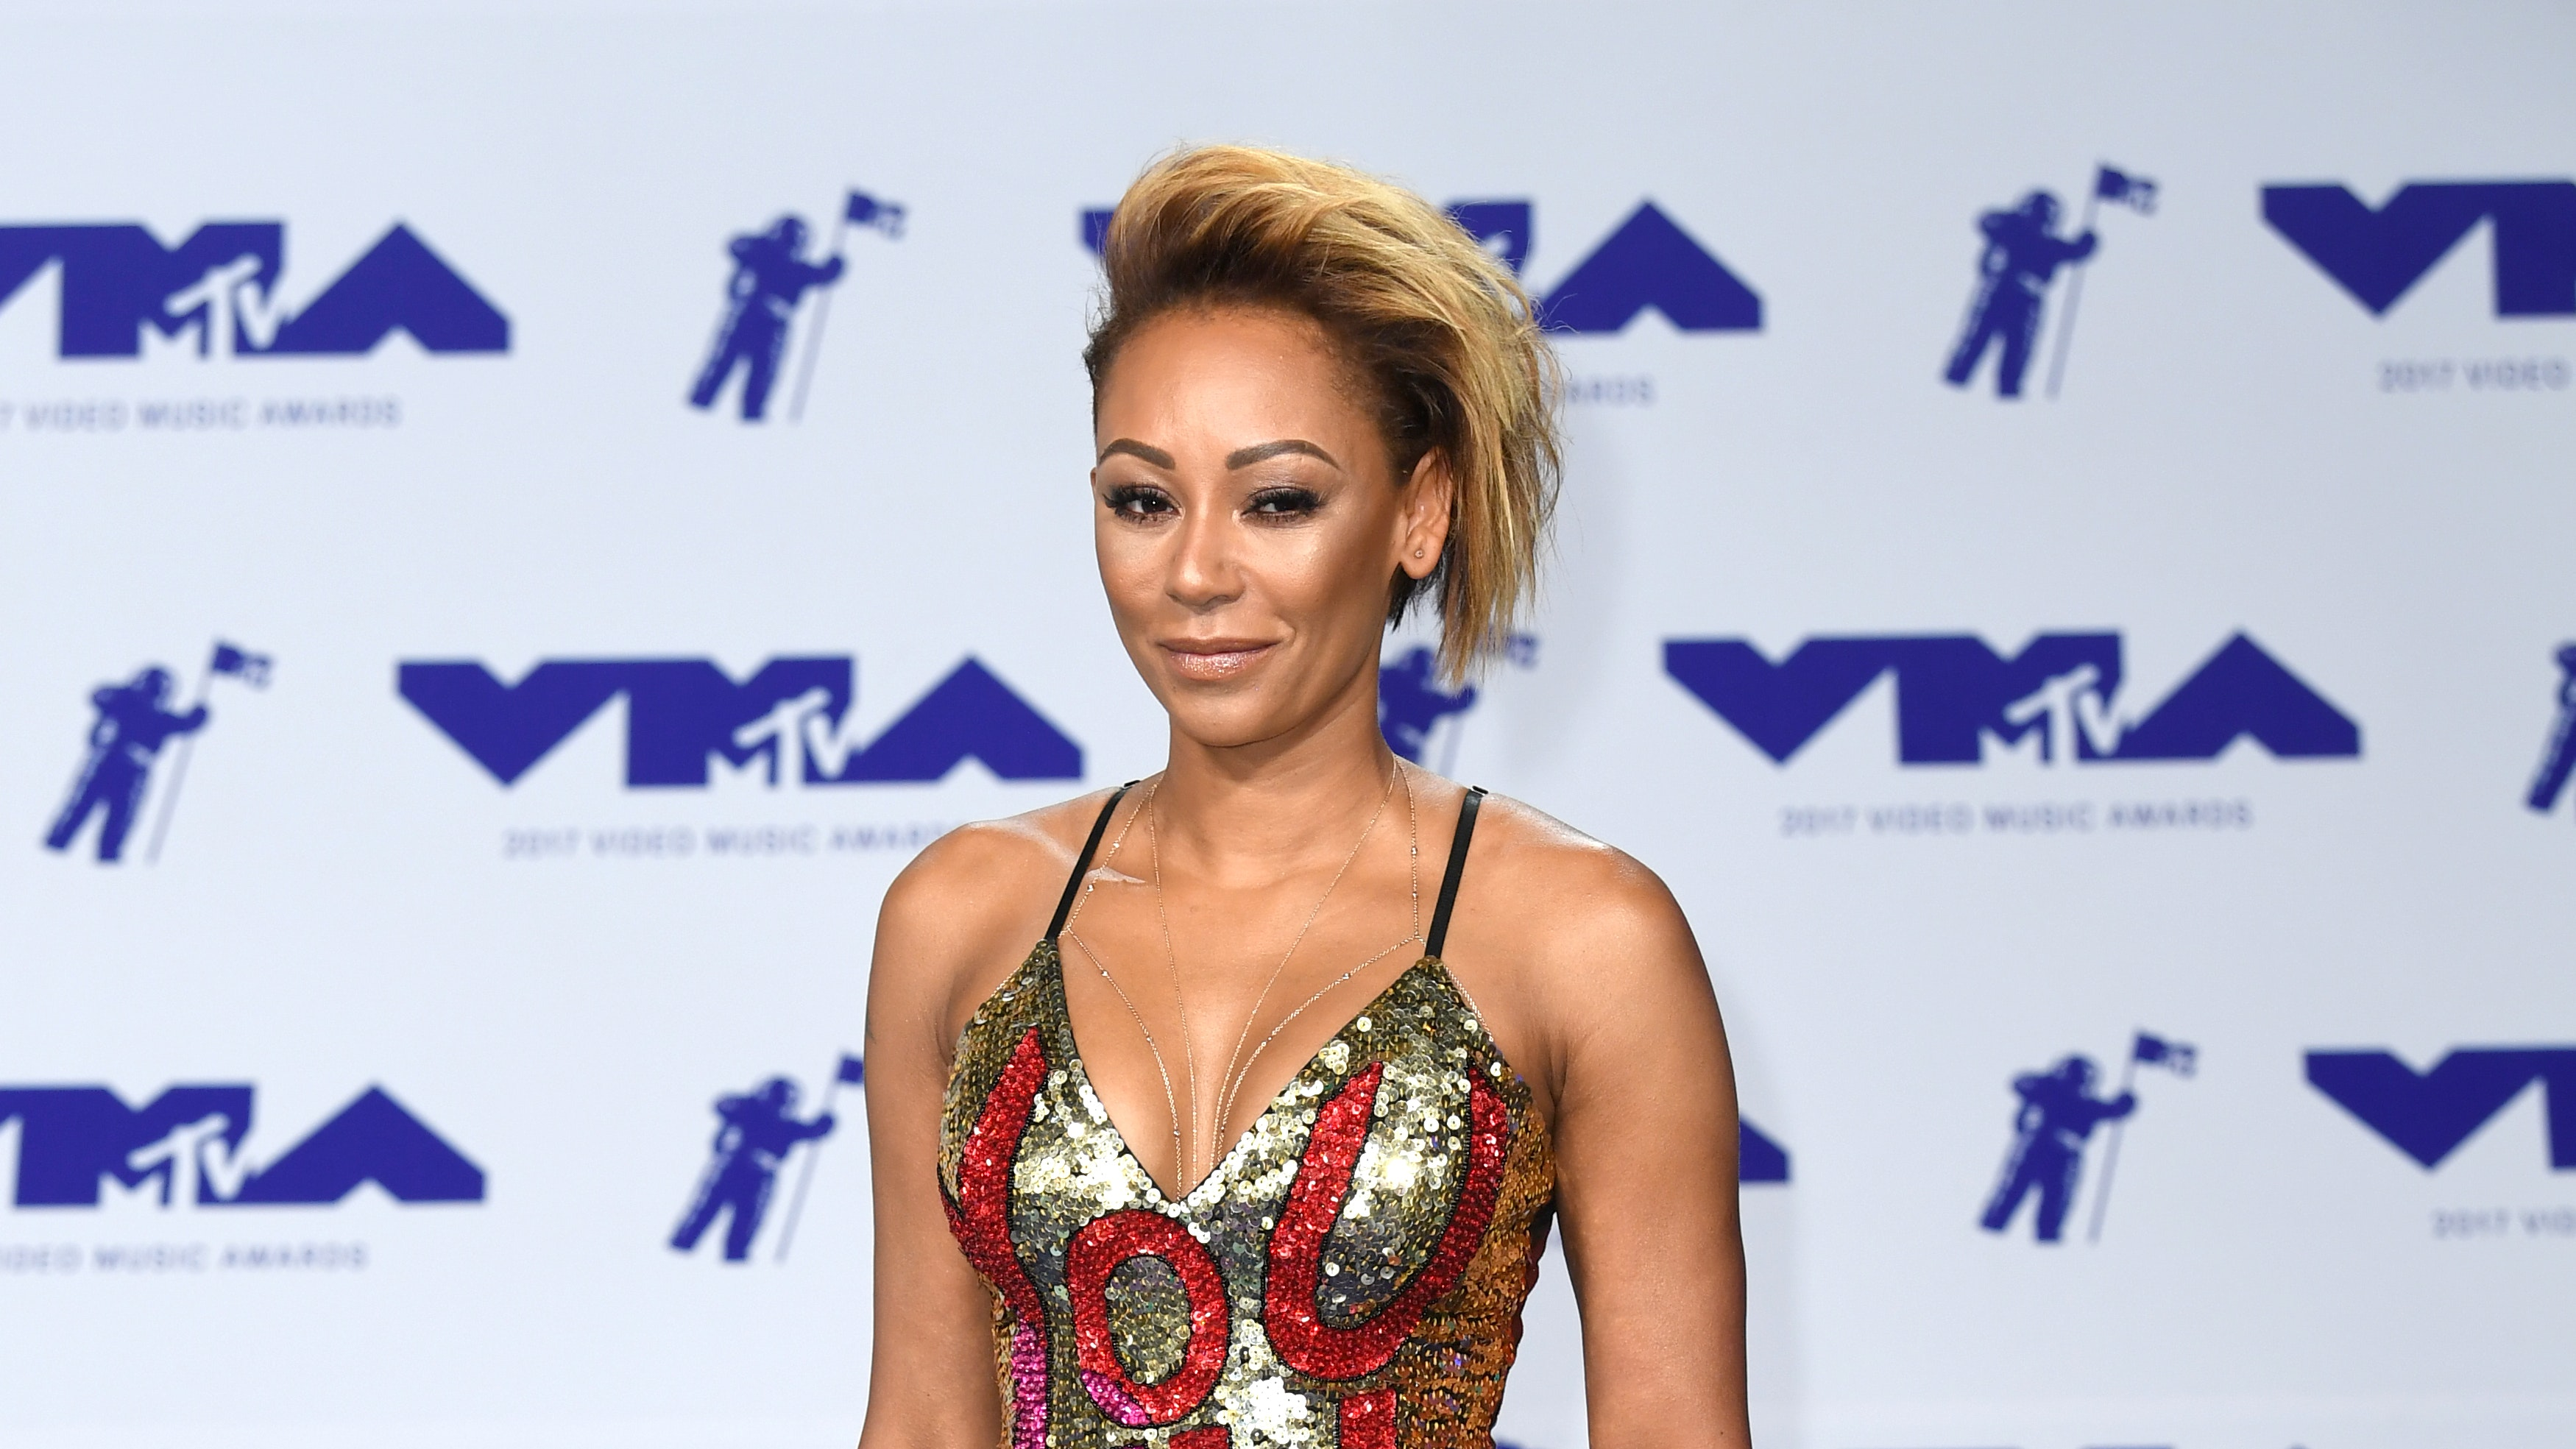 SCARY SPICE SURGERIES: Mel B admits to having 'nips and tucks'